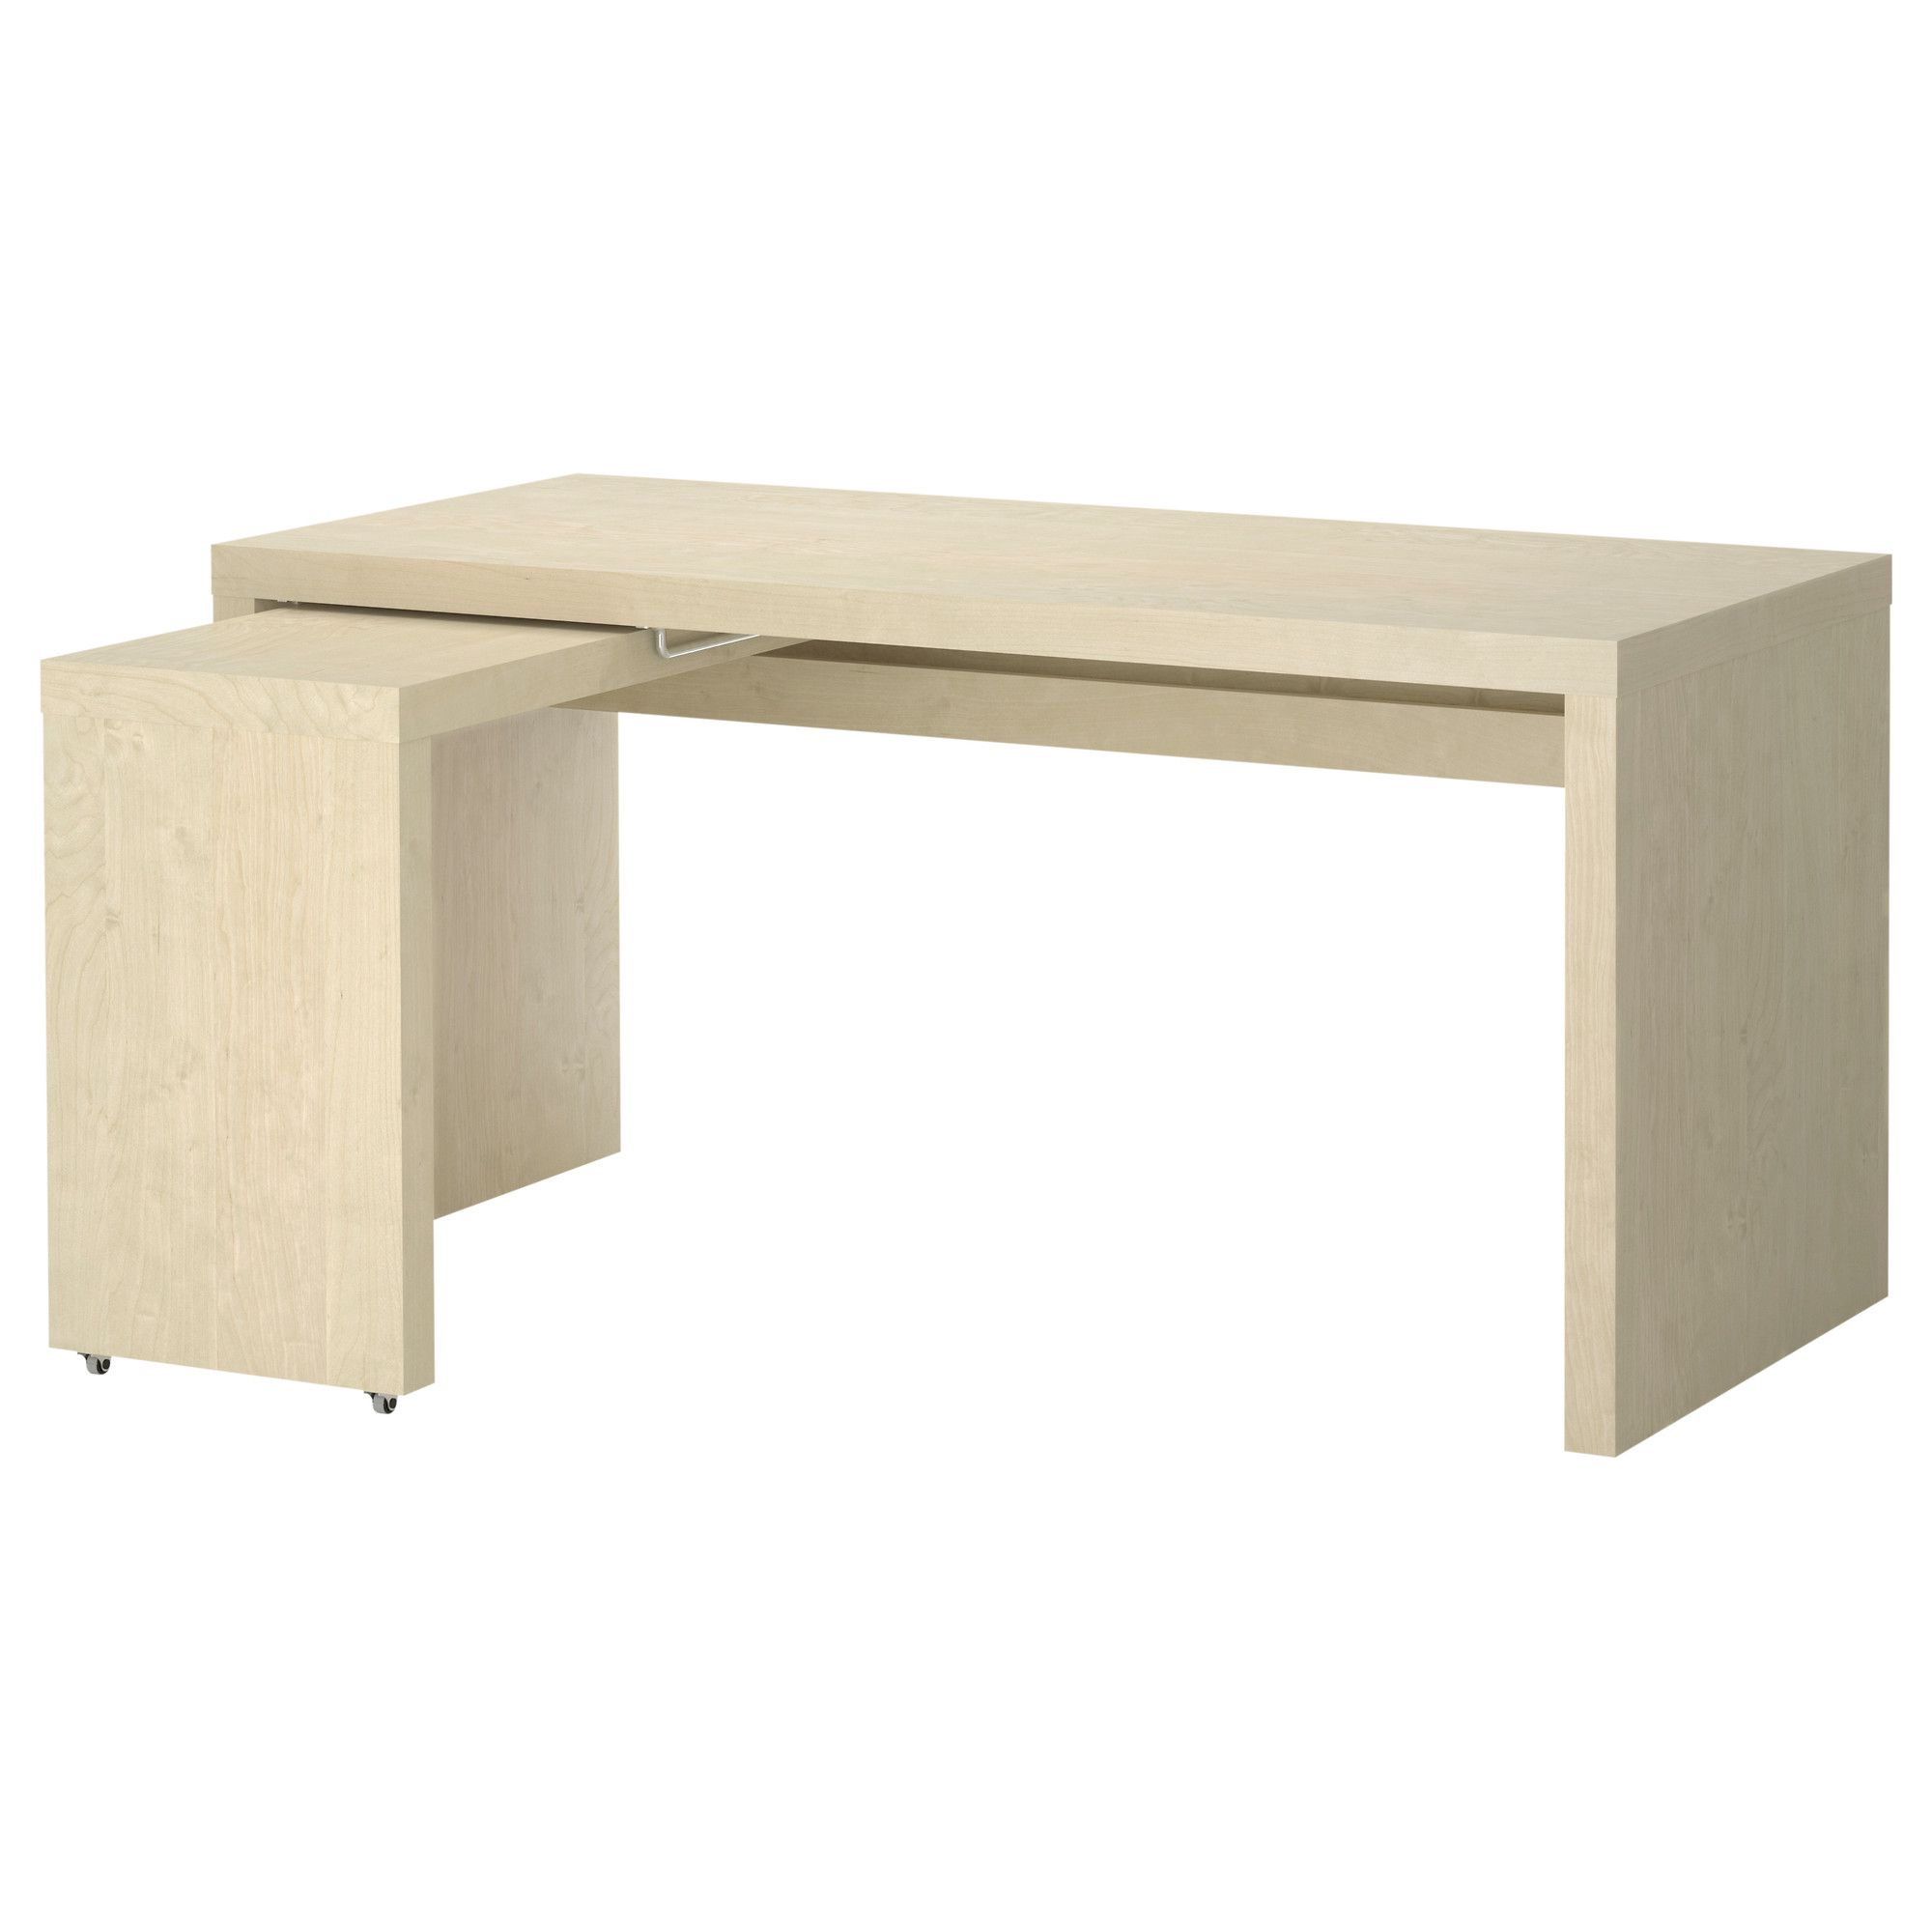 ikea office cabinet. Ikea Tables Office. Malm Desk With Pull-out Panel - Birch Veneer Pull Office Cabinet S